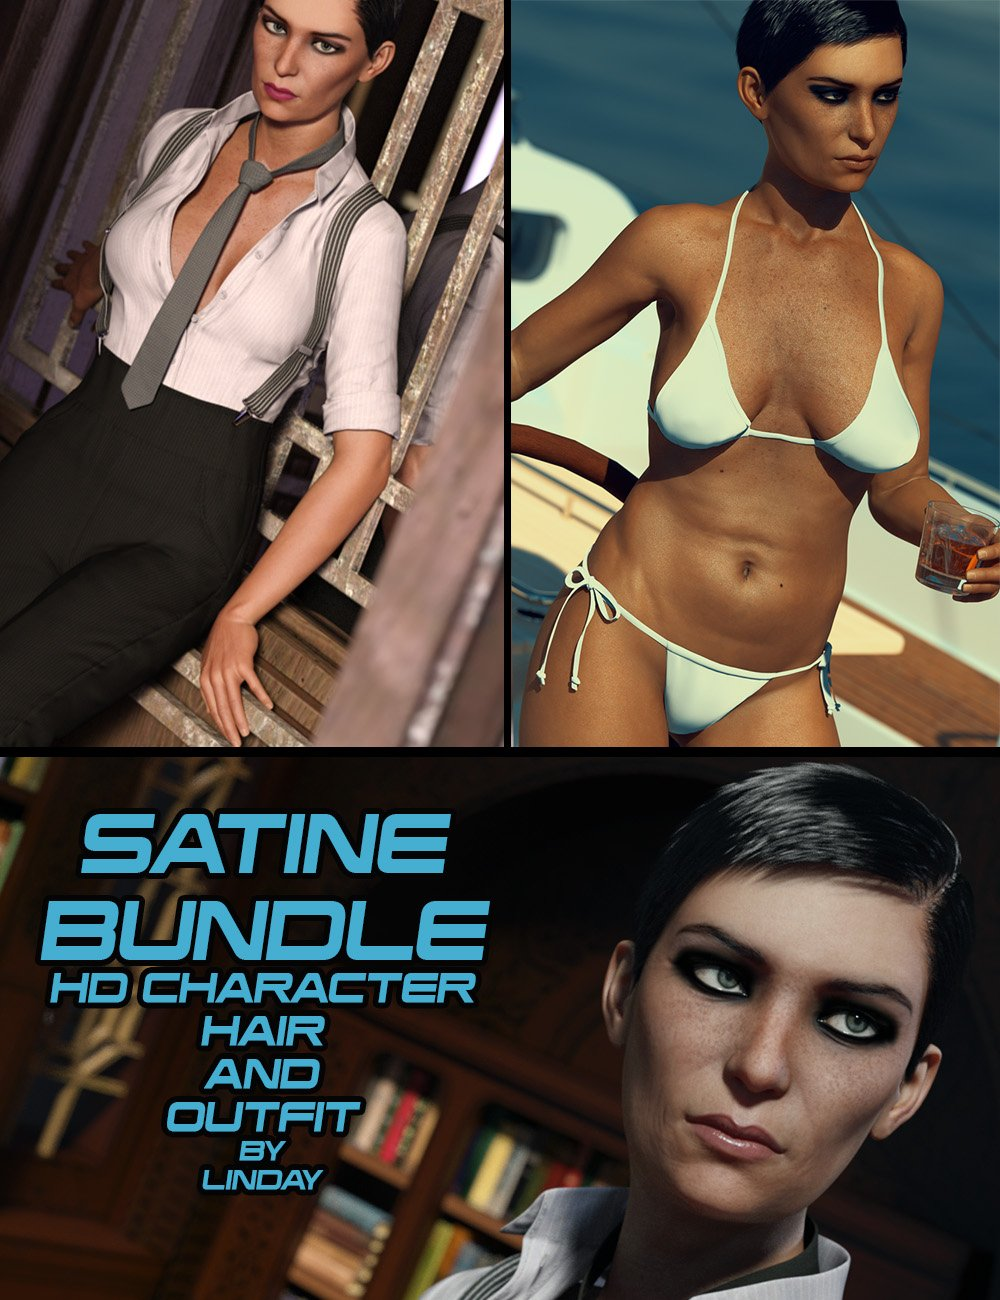 Satine Bundle for Genesis 3 Female(s) by: Linday, 3D Models by Daz 3D